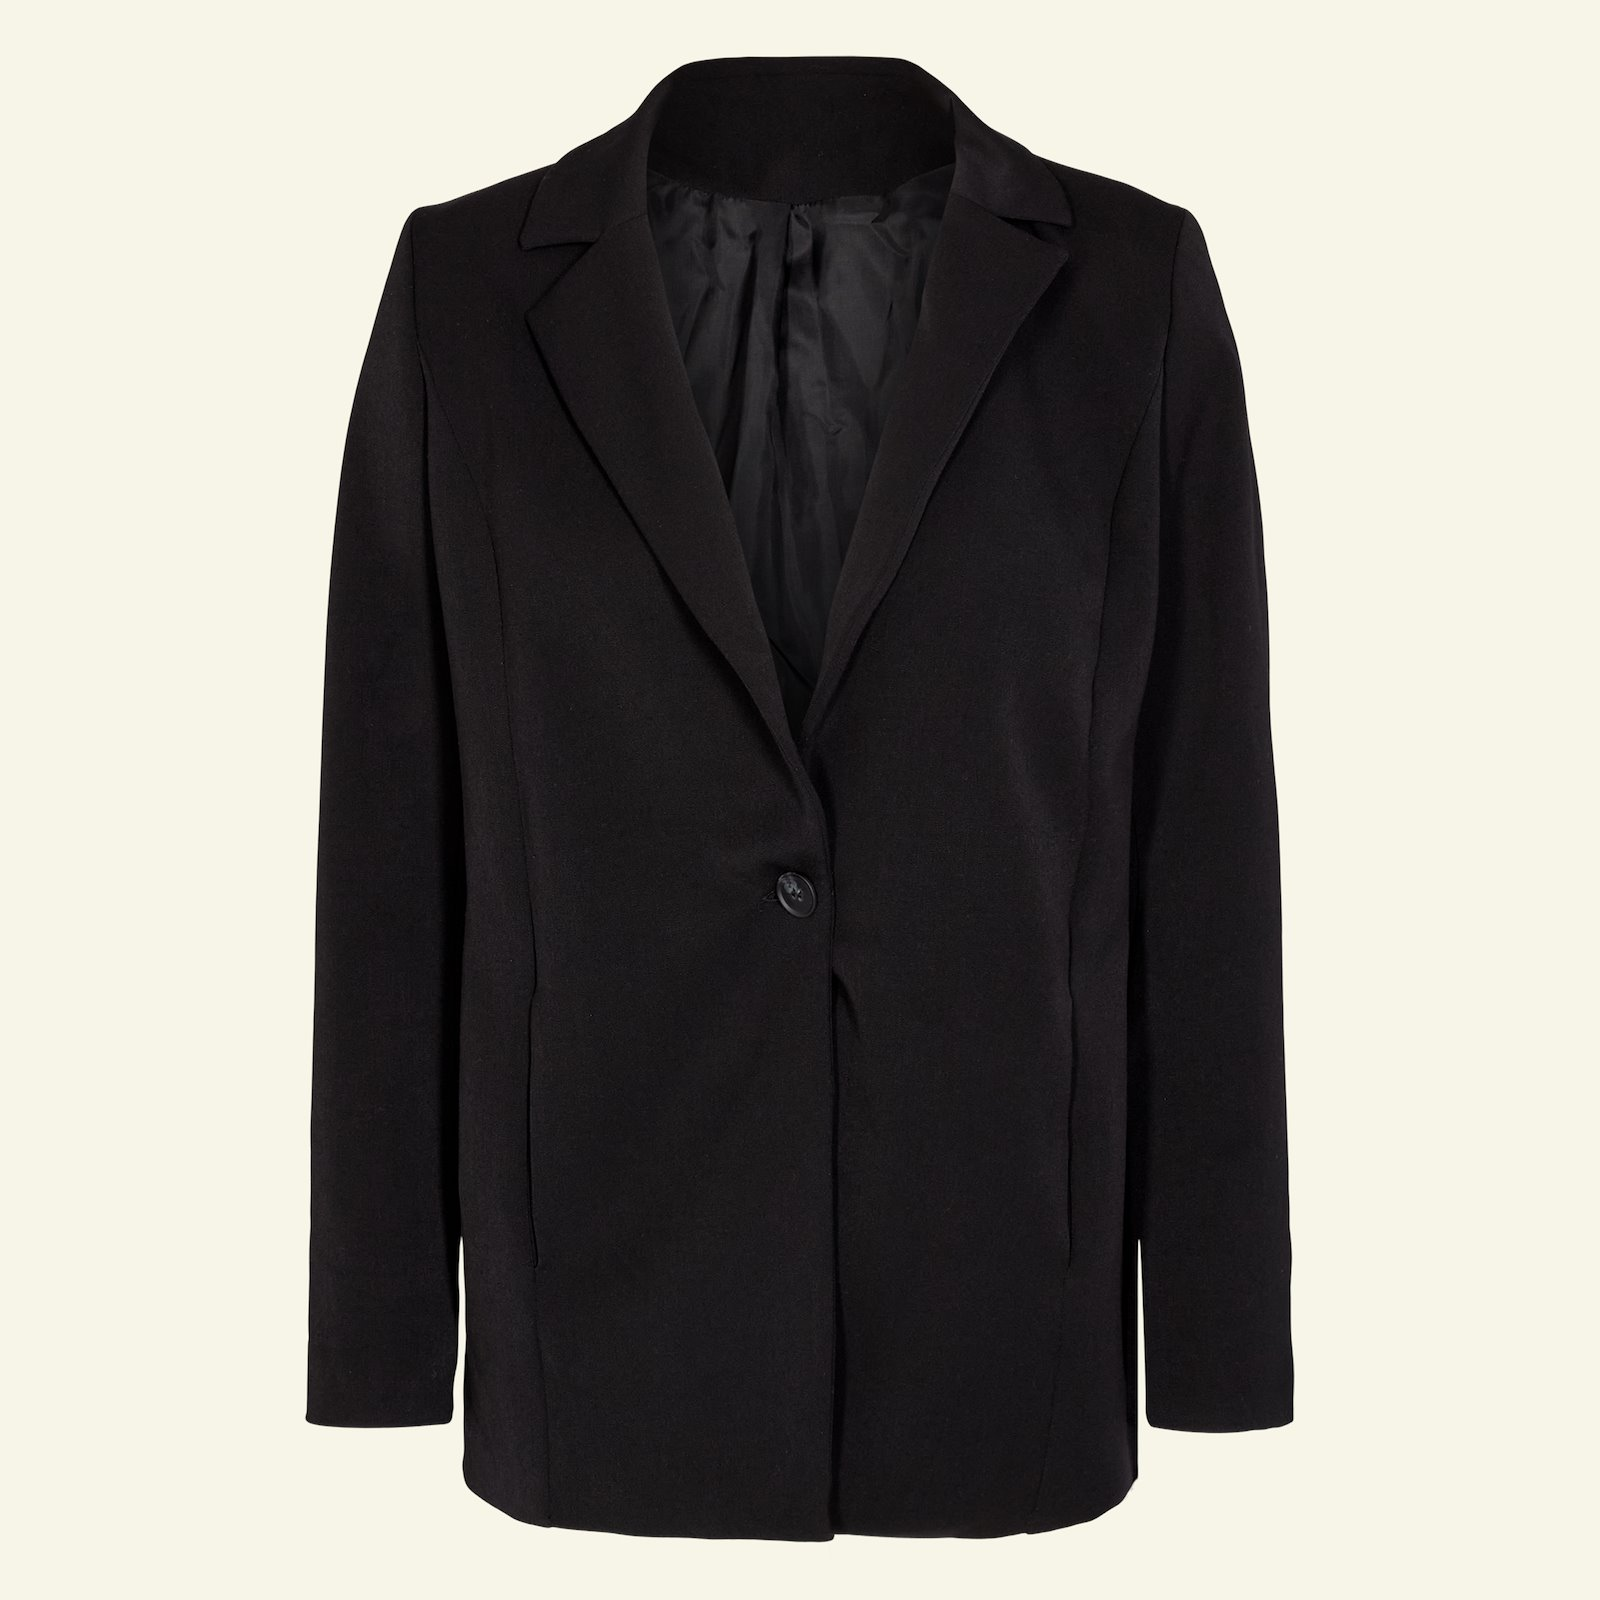 Suit jacket with lining p24048_460563_5043_40237_sskit